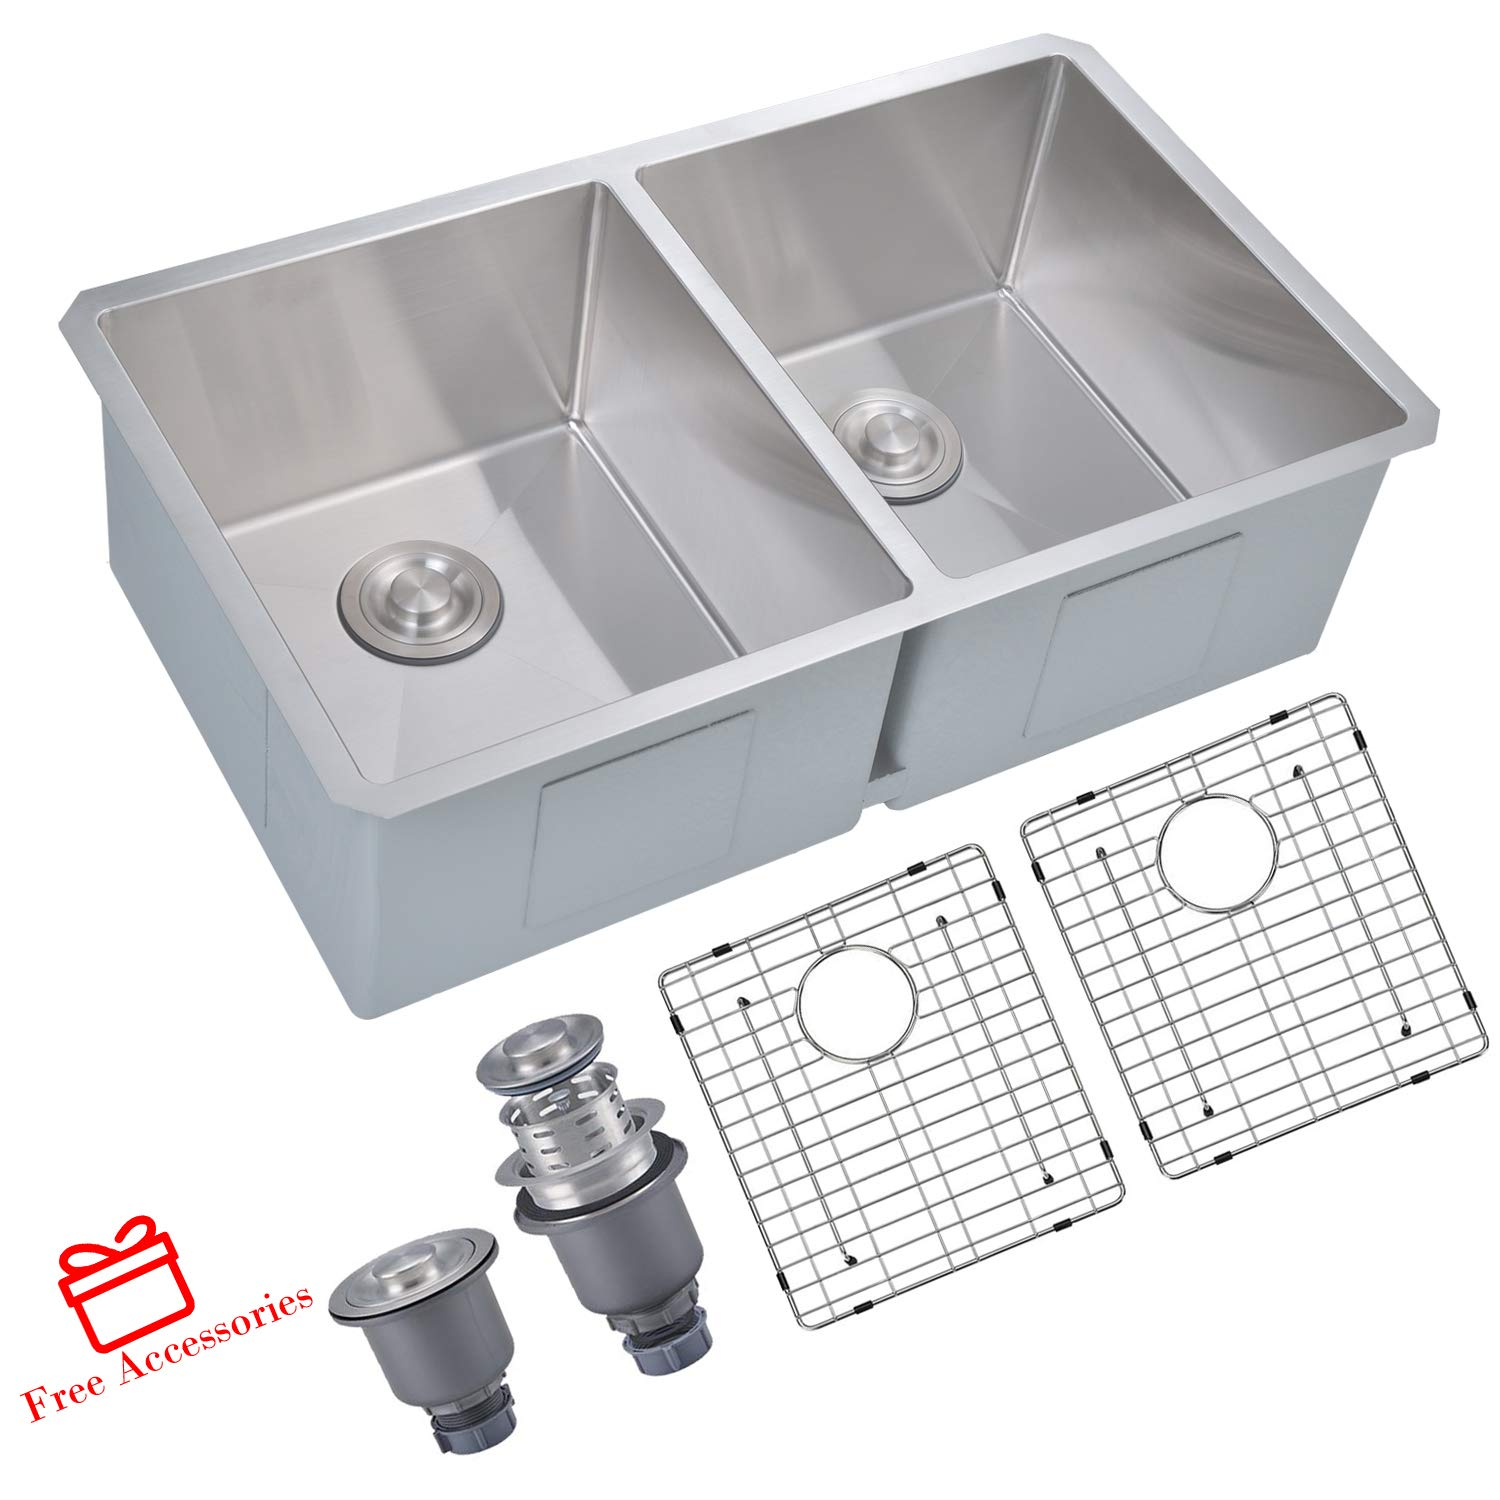 SINOGY 33 x19 Inch 50 50 Double Bowl Undermount 16 Gauge Stainless Steel Kitchen Sink With 2 Drainers and 2 Bottom Grids